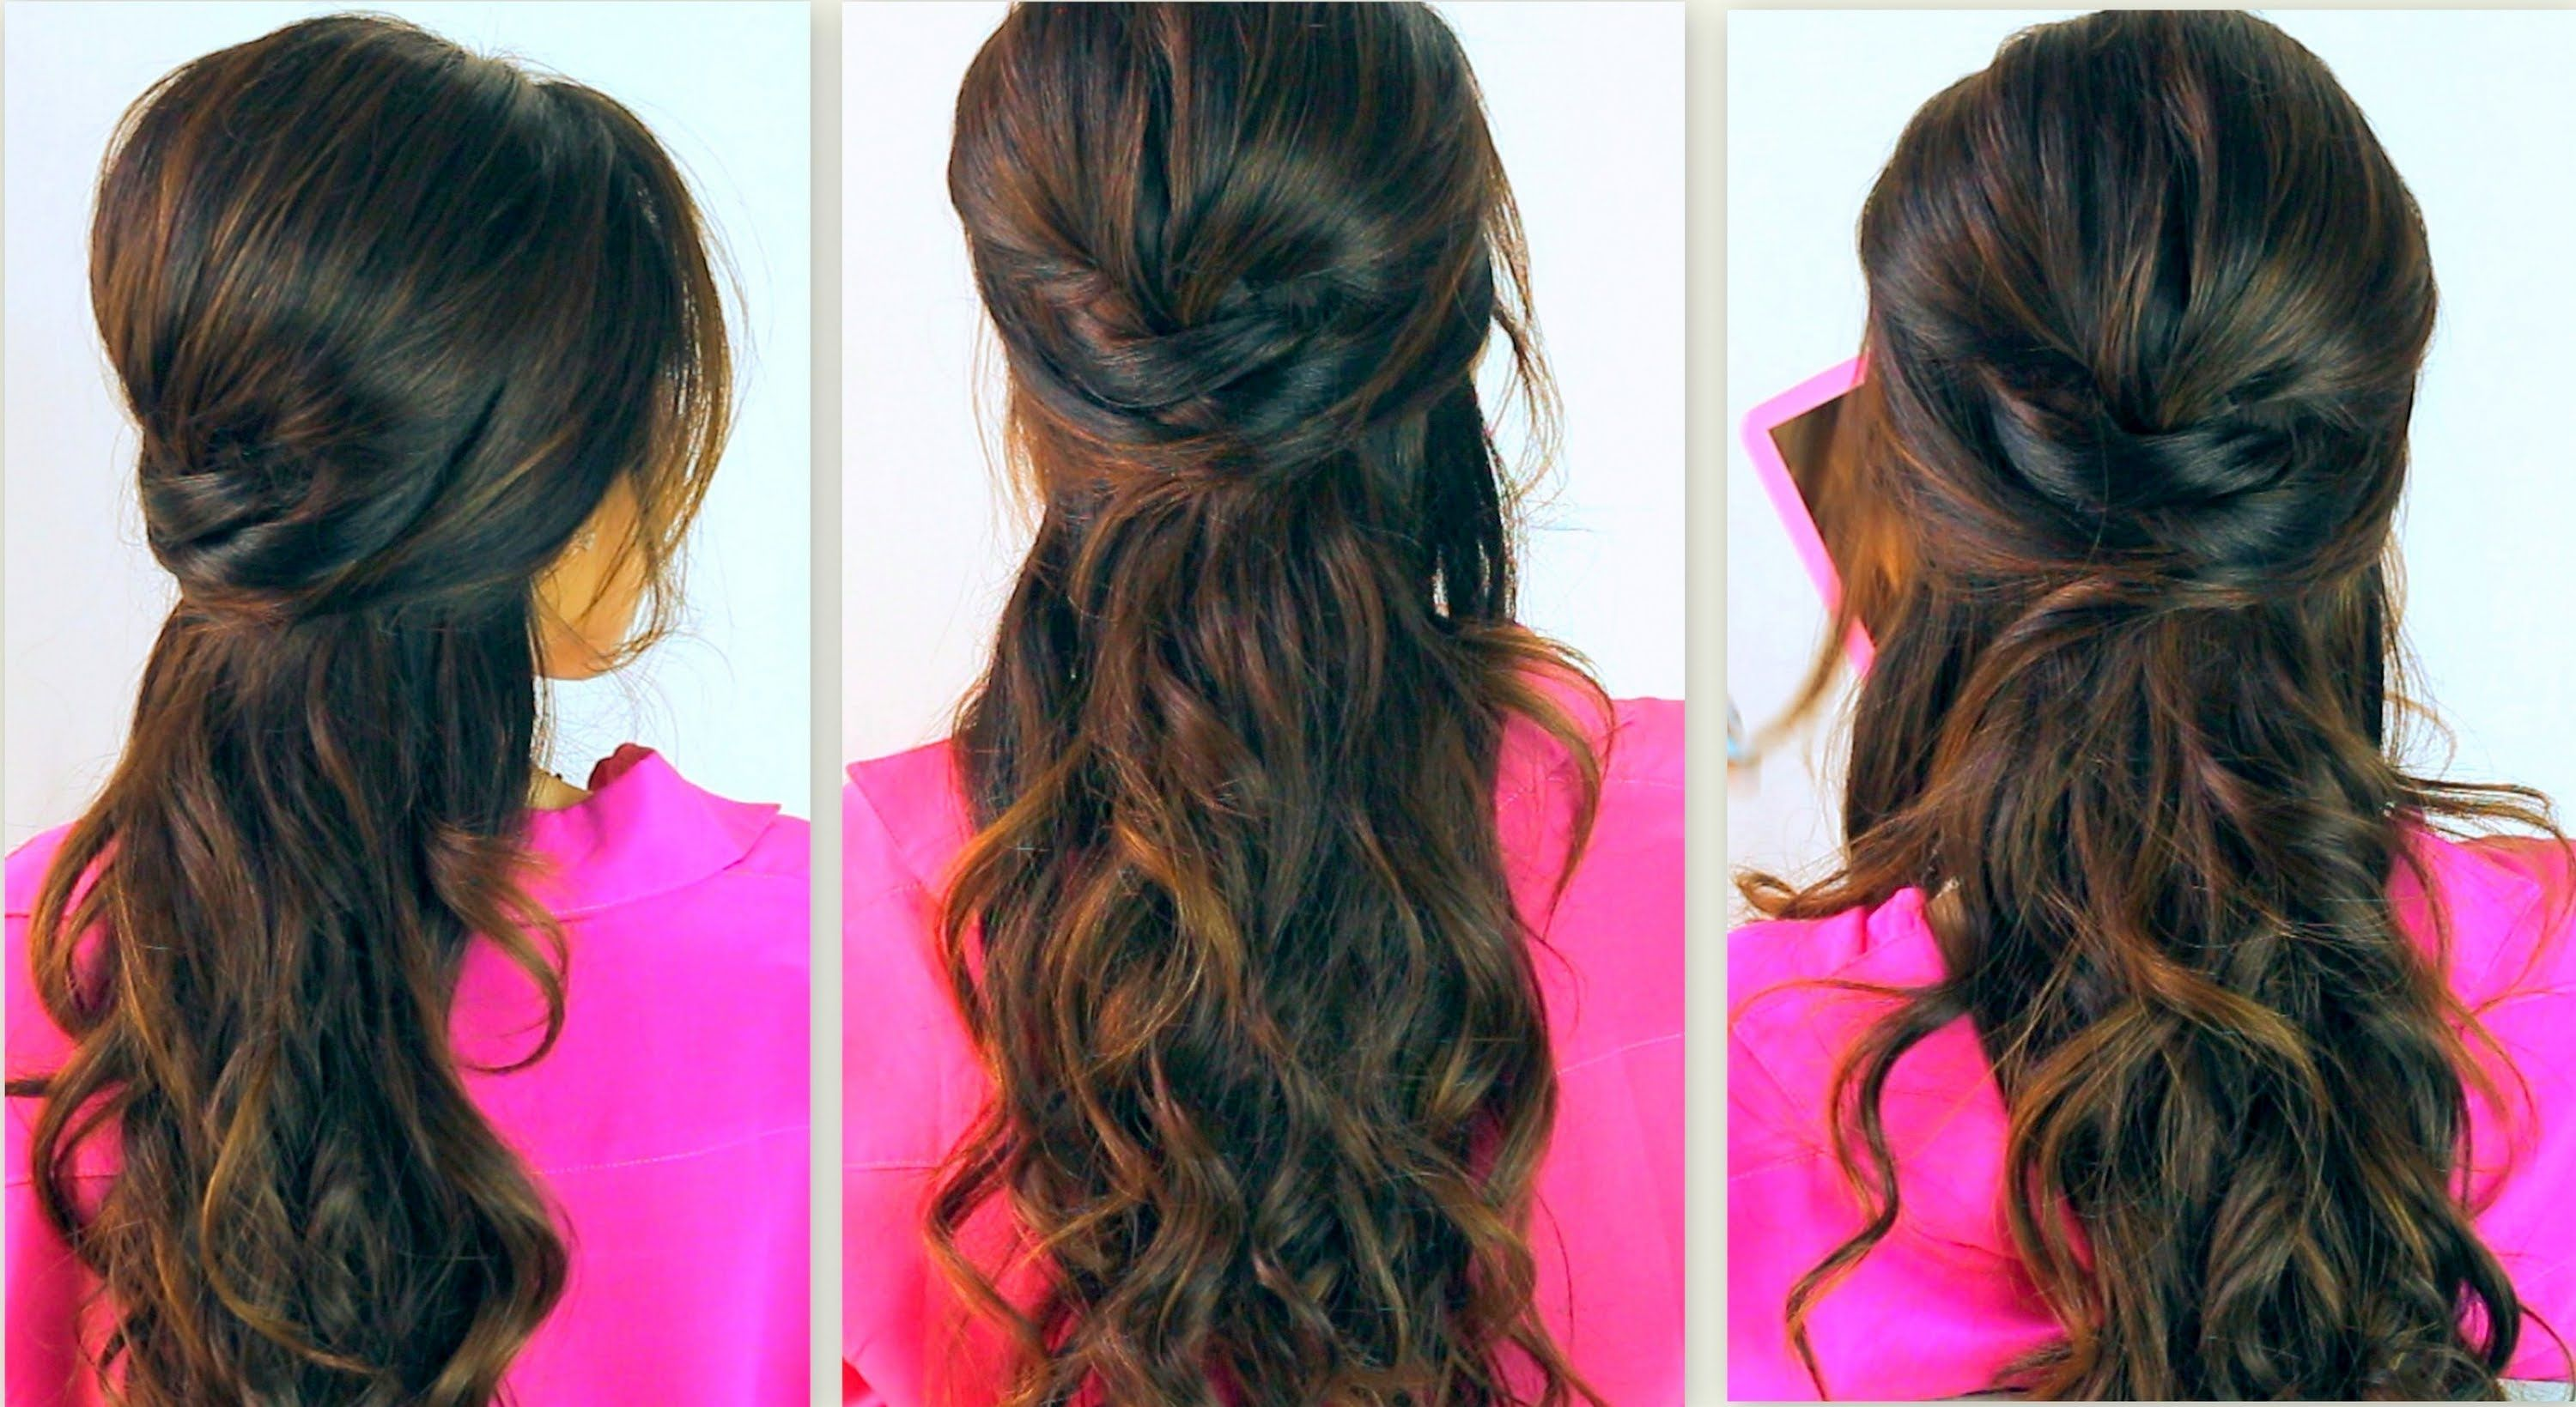 Admirable 1000 Images About Hoco Hairstyles On Pinterest Formal Hair Short Hairstyles For Black Women Fulllsitofus